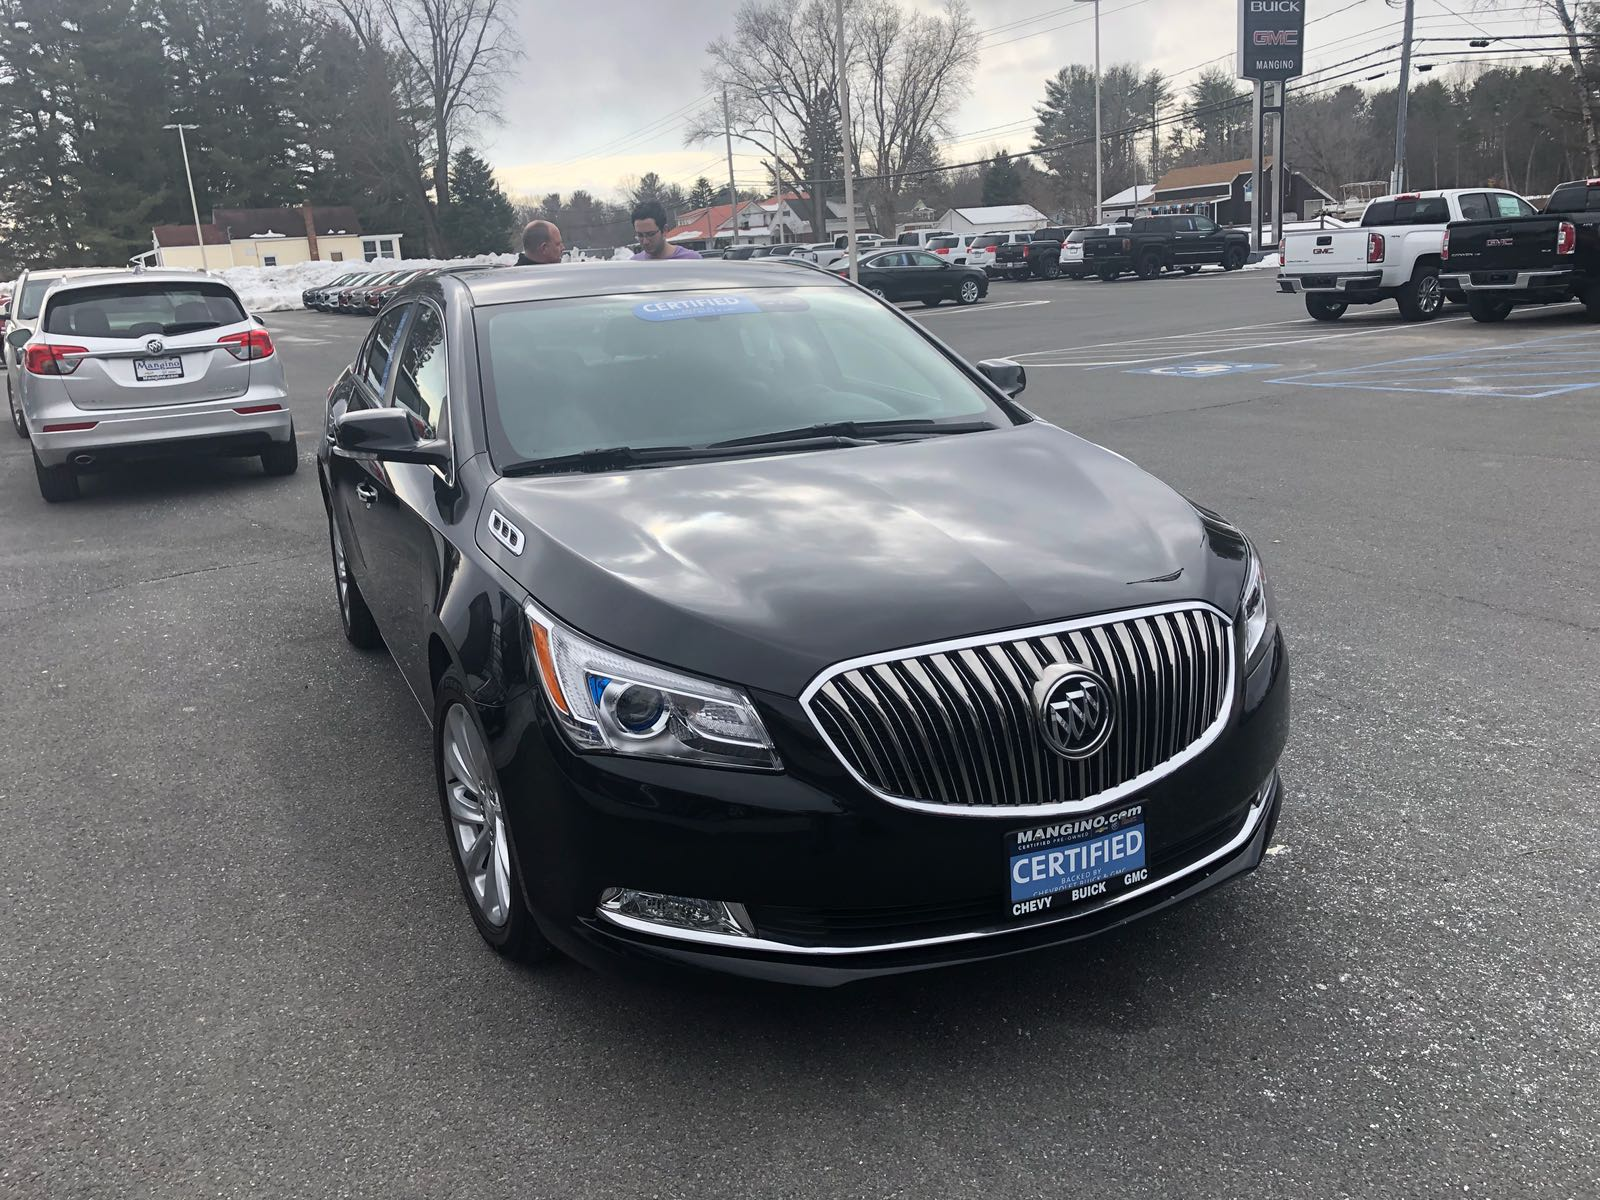 485 Luxury Black Car Uber Black Buick Lacrosse For Rent